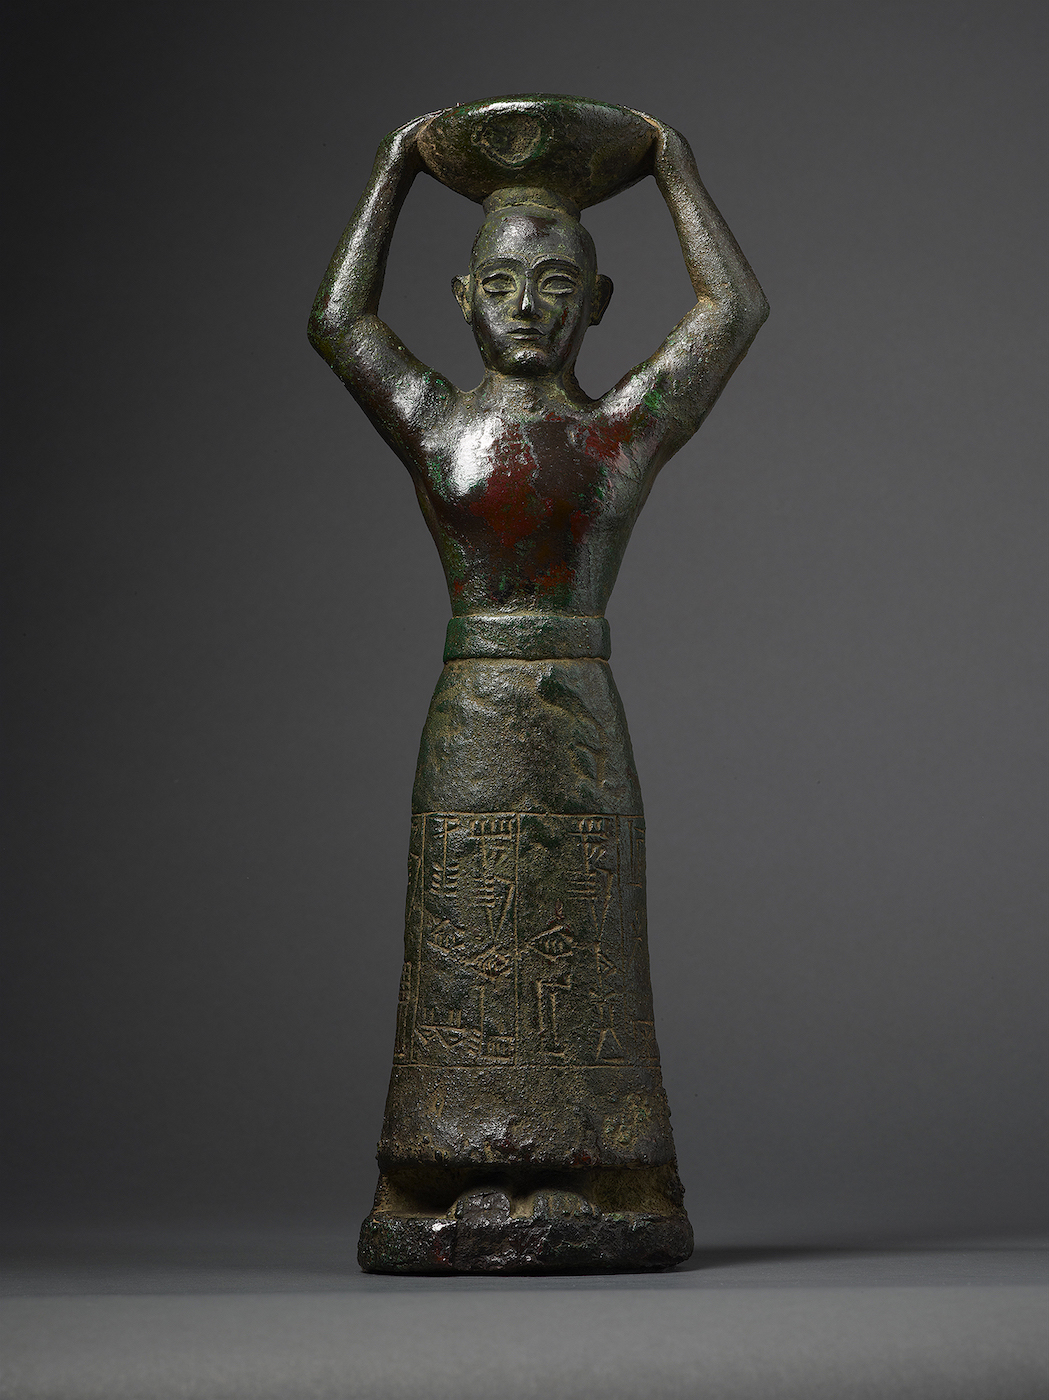 """Foundation figure of King Ur-Namma (Neo-Sumerian, Ur III period, reign of Ur-Namma, 2112–2094 BCE), copper alloy. Inscribed in Sumerian: """"Ur-Namma, King of Ur, King of Sumer and Akkad, who built the temple of Enlil"""" (courtesy the Morgan Library & Museum)"""